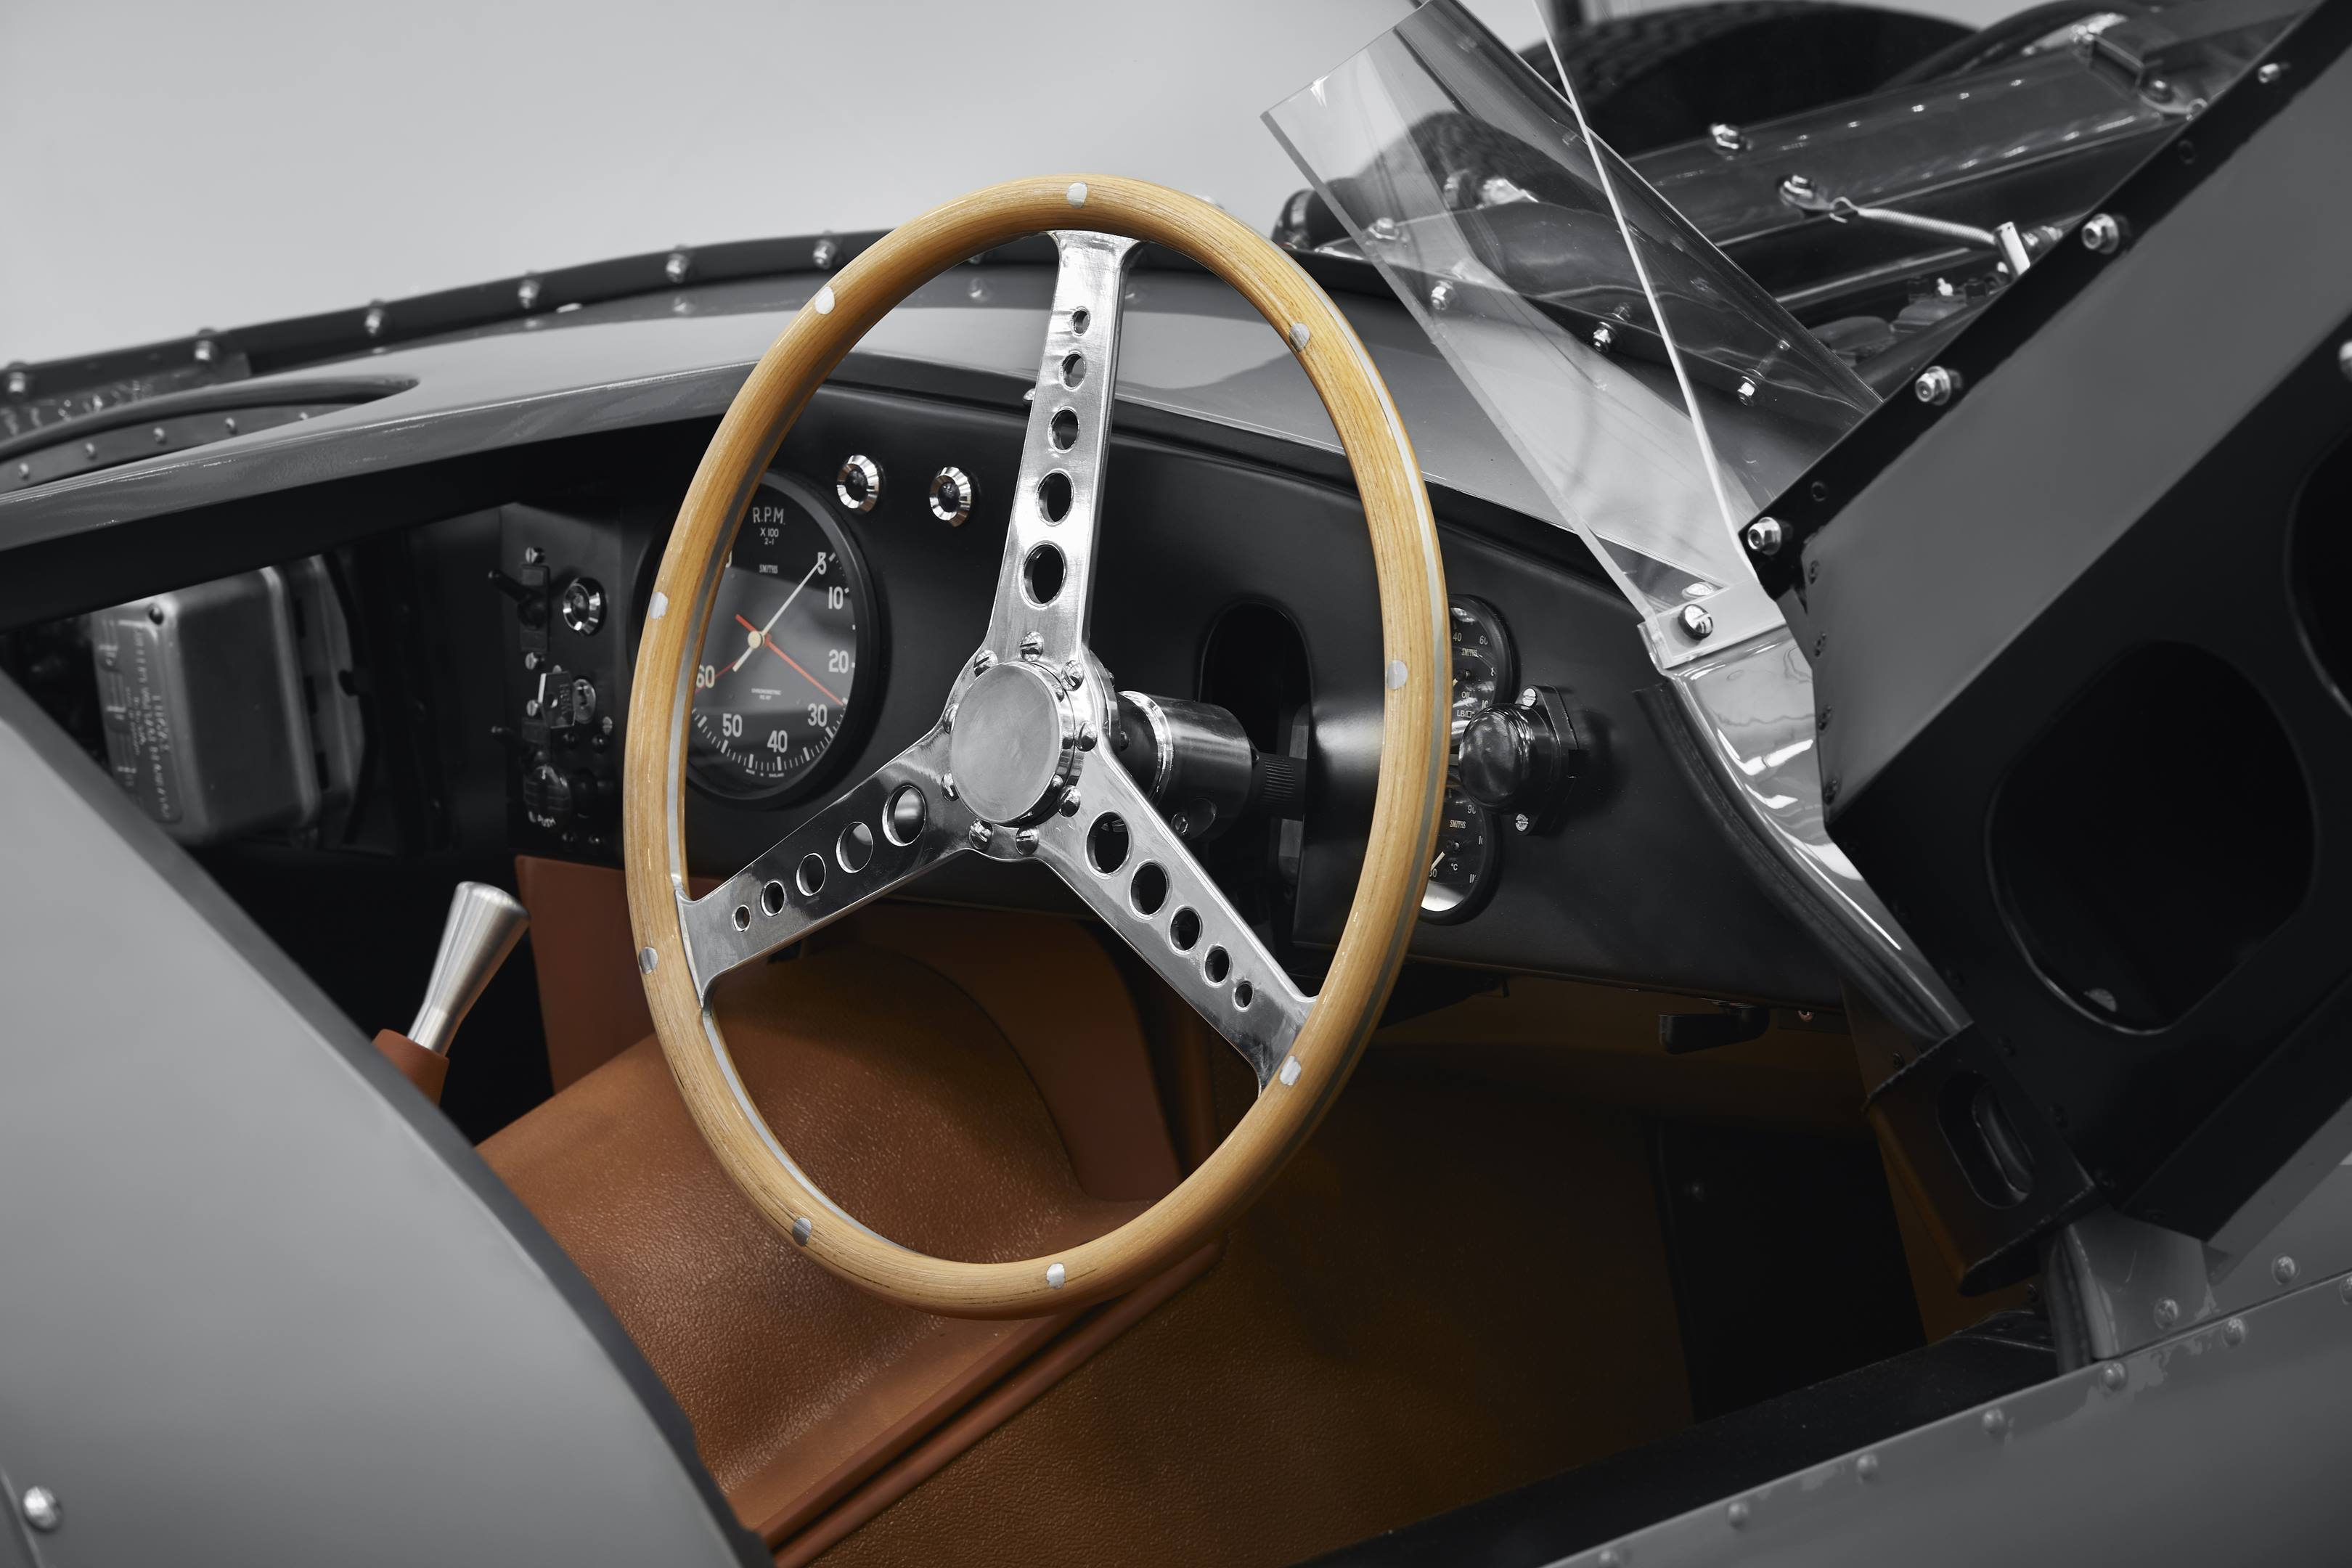 Jaguar D-type steering wheel